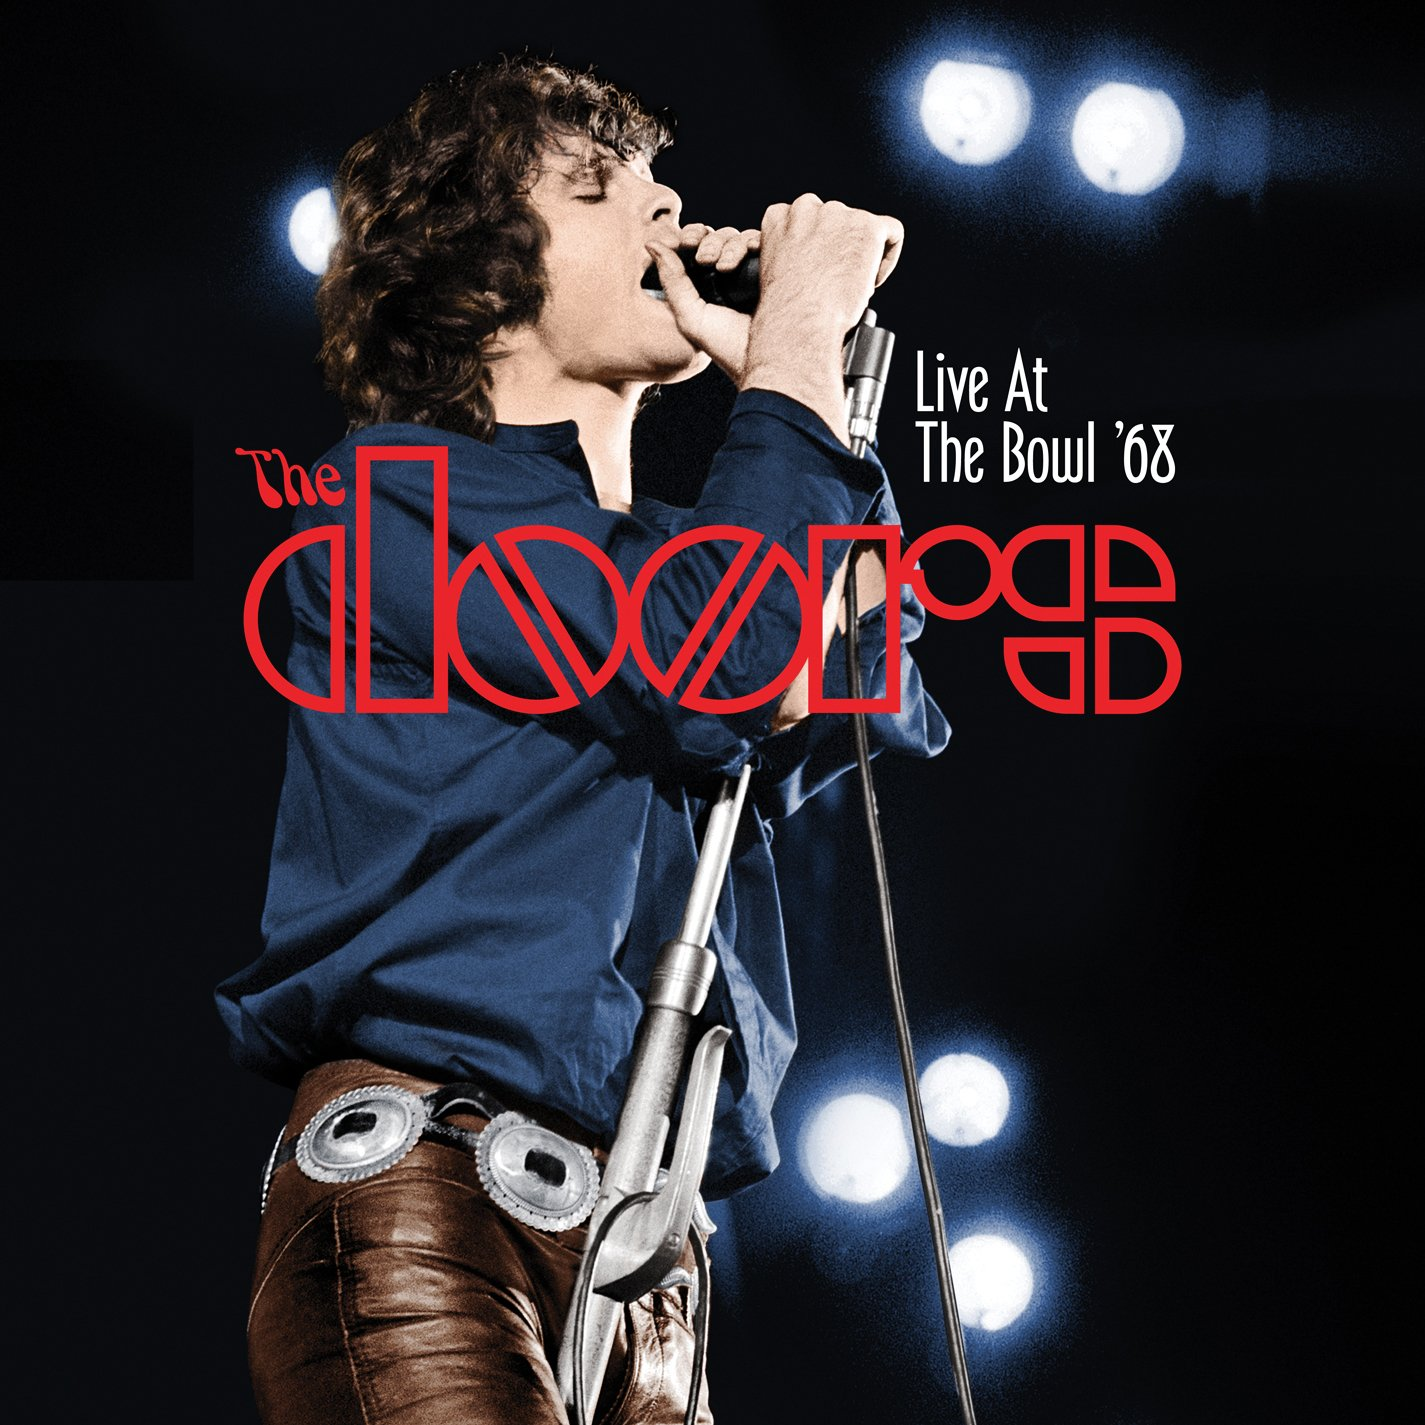 sc 1 st  Amazon.com & The Doors - Live At The Bowl u002768 (2LP 180 Gram Vinyl) - Amazon.com Music